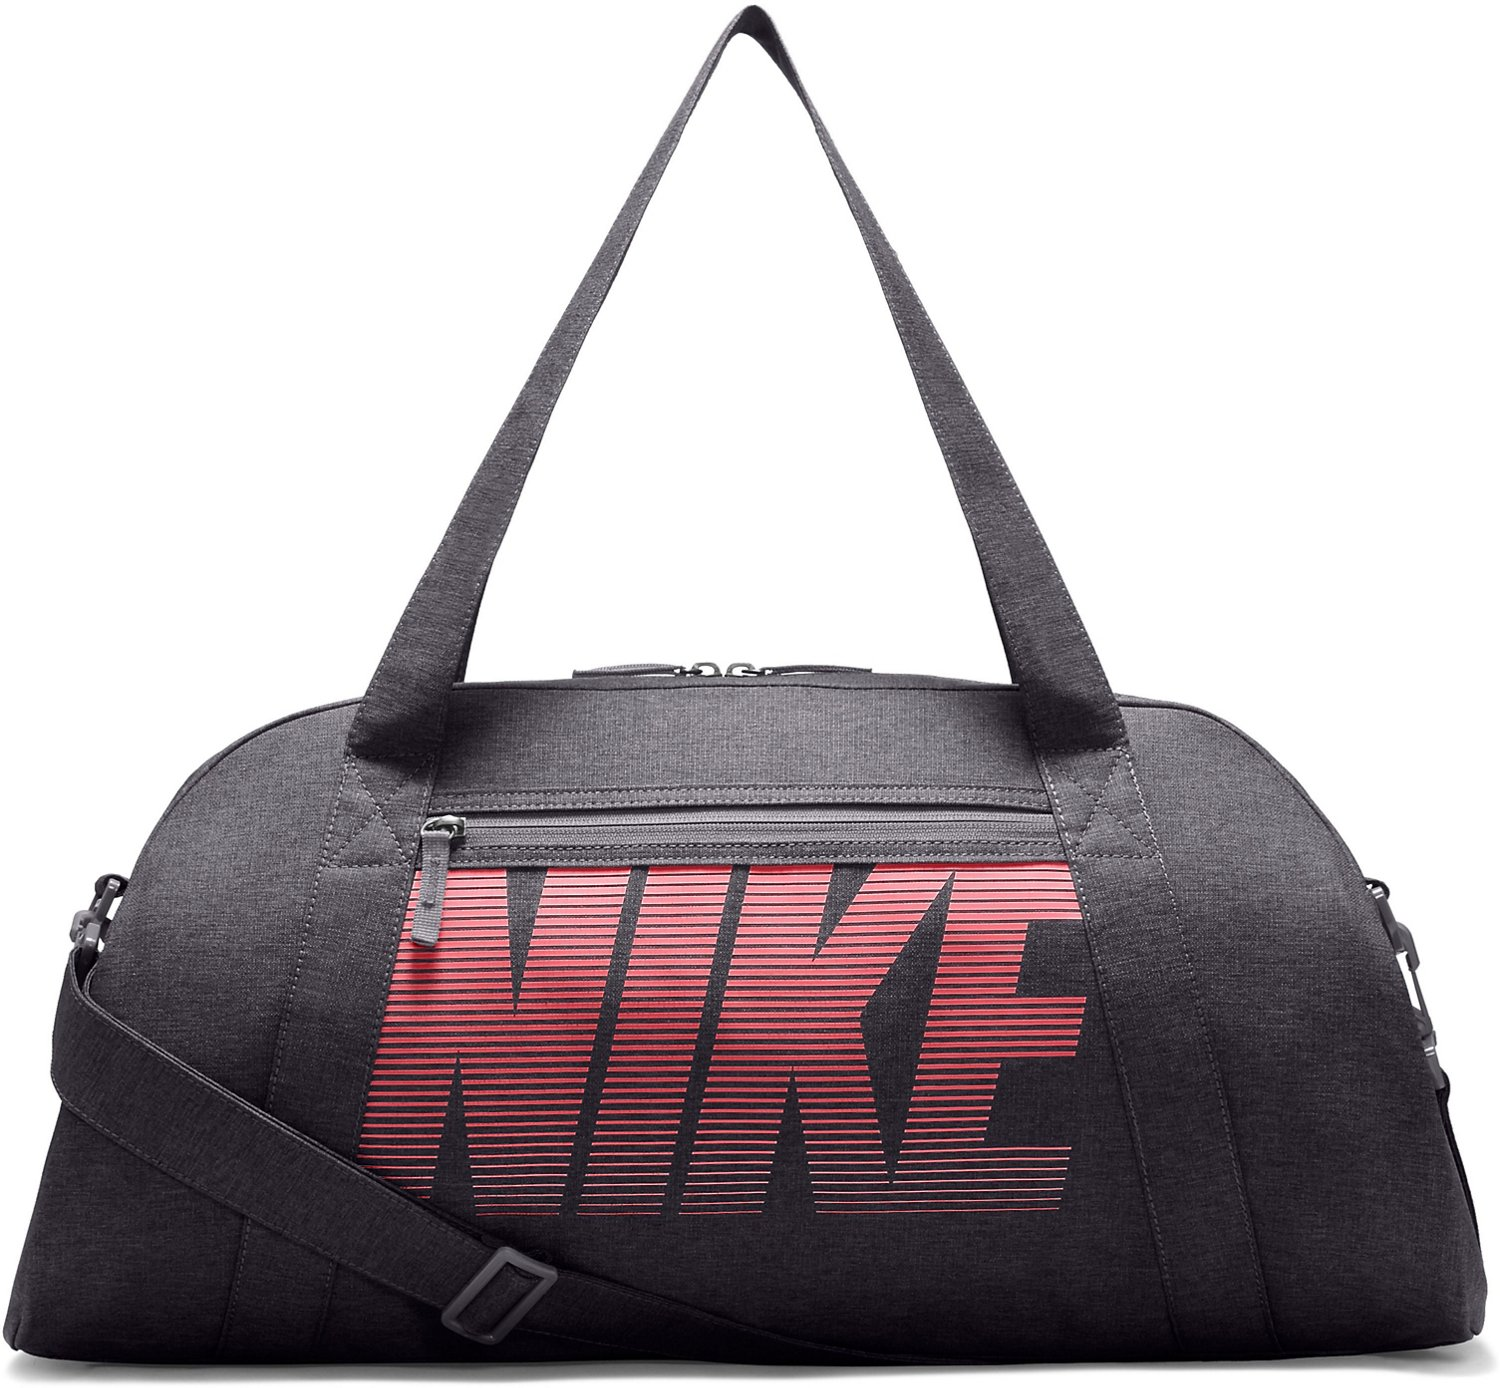 3ce63430d4623 Display product reviews for Nike Women s Gym Club Training Duffel Bag